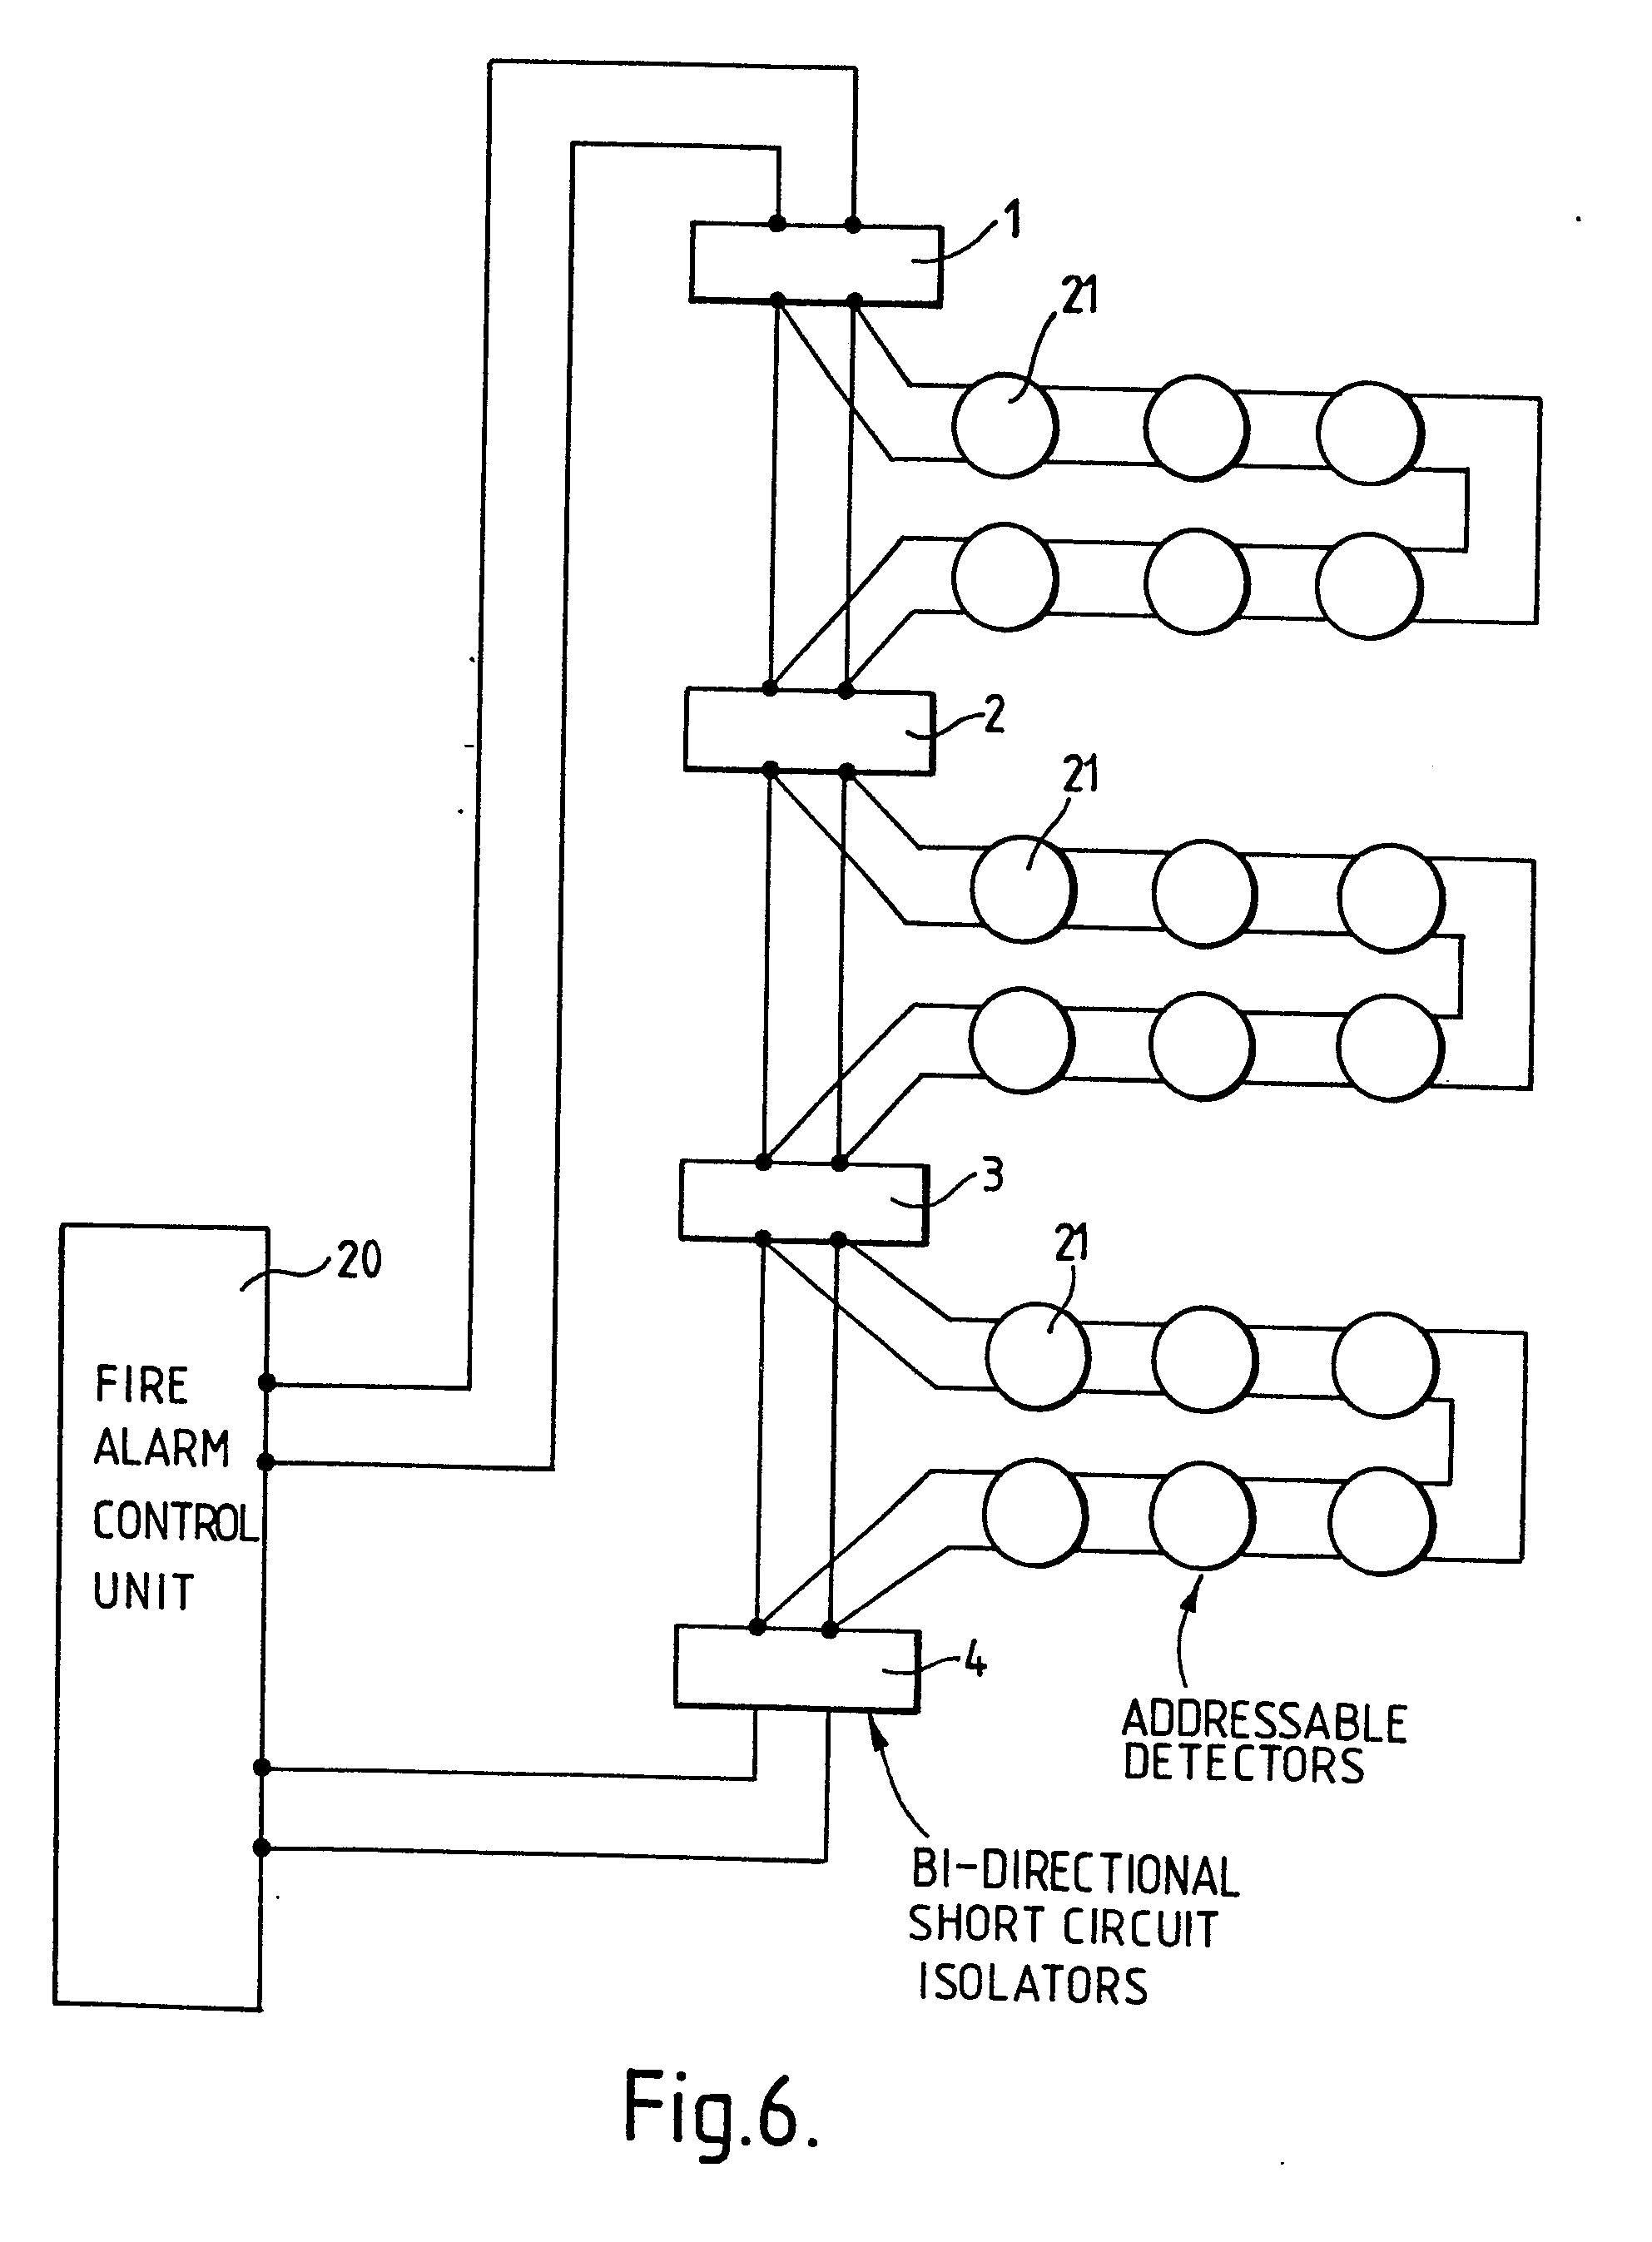 imgf0005 addressable fire alarm circuit diagram circuit and schematics fire alarm wiring schematic at cita.asia